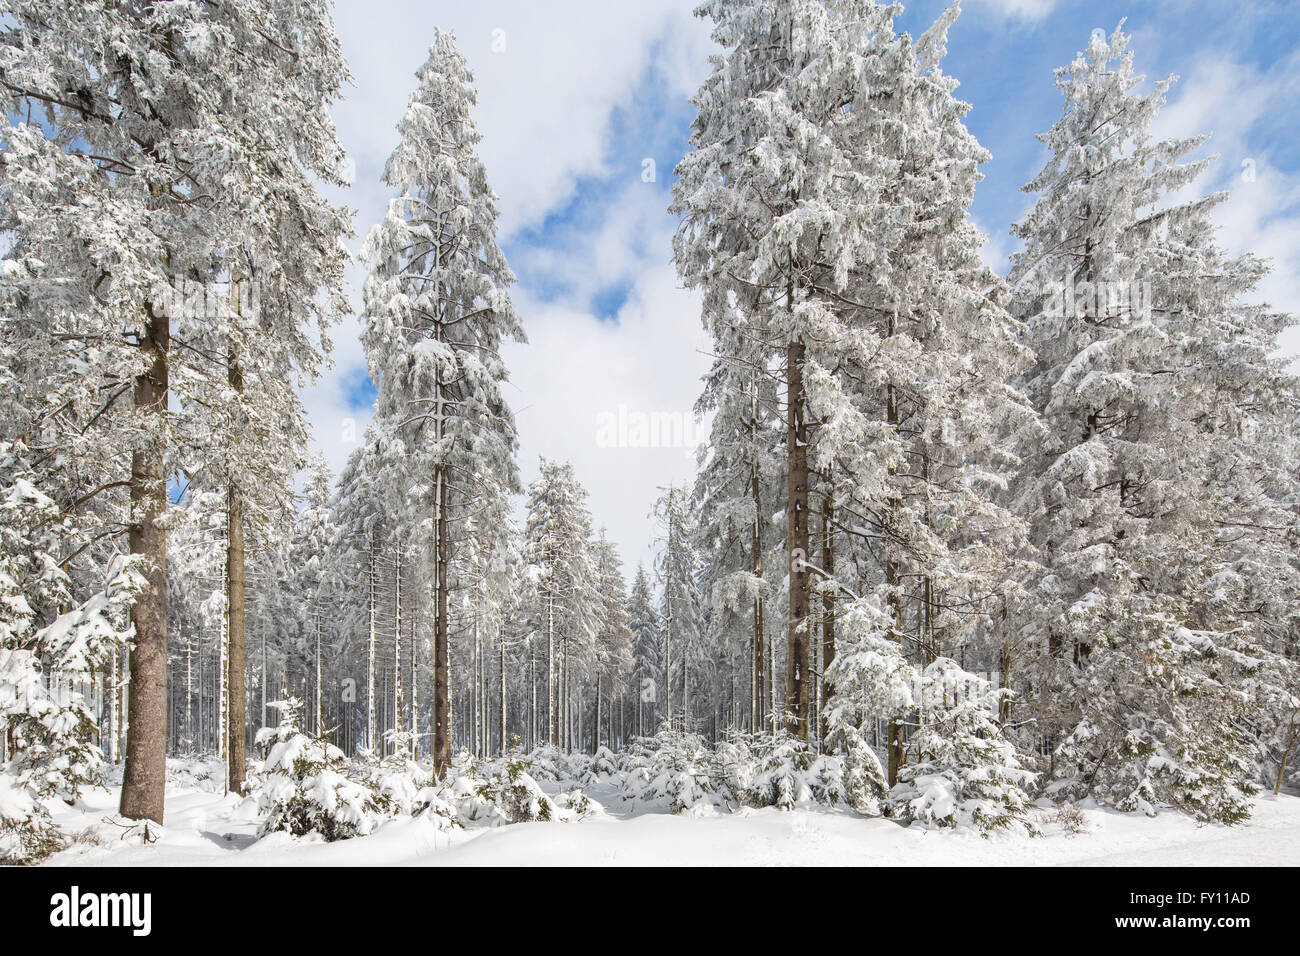 Pine trees in coniferous forest covered in snow in winter - Images of pine trees in snow ...